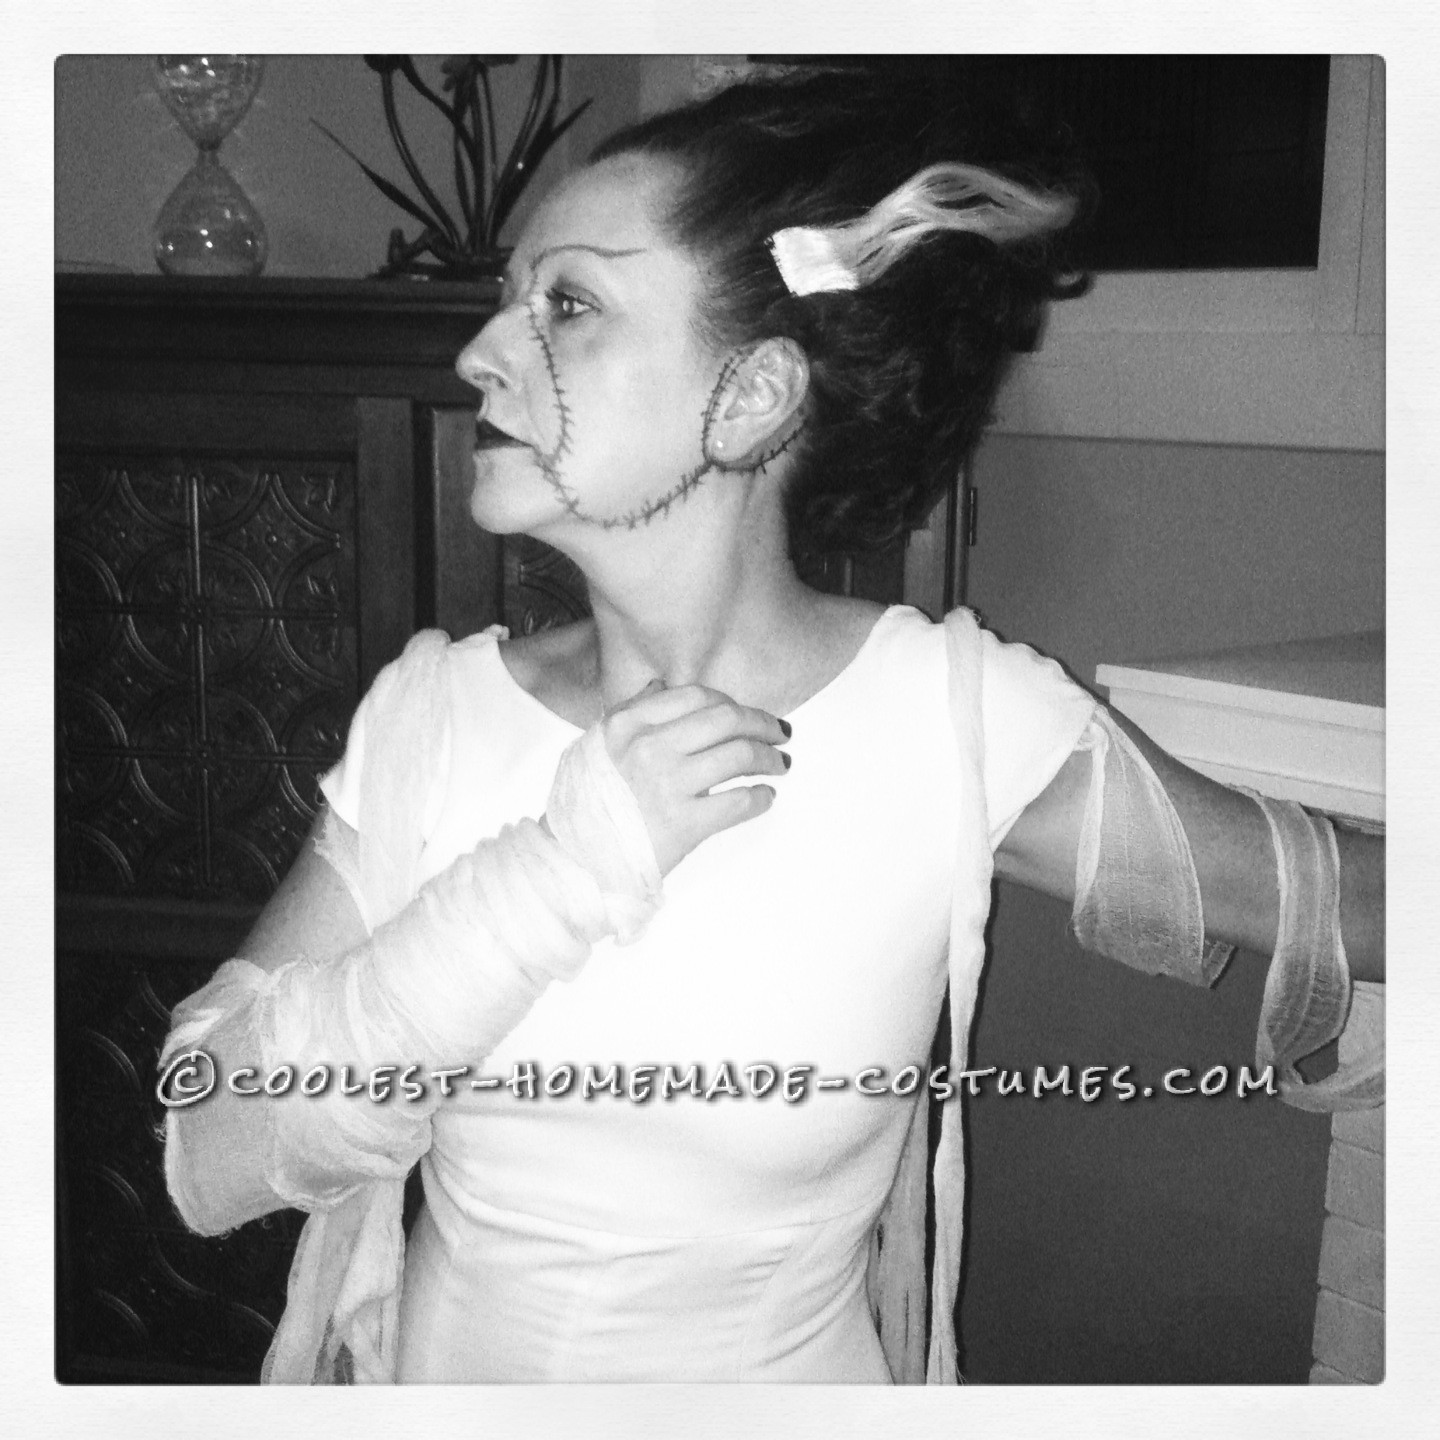 Bride of Frankenstein Costume for $10